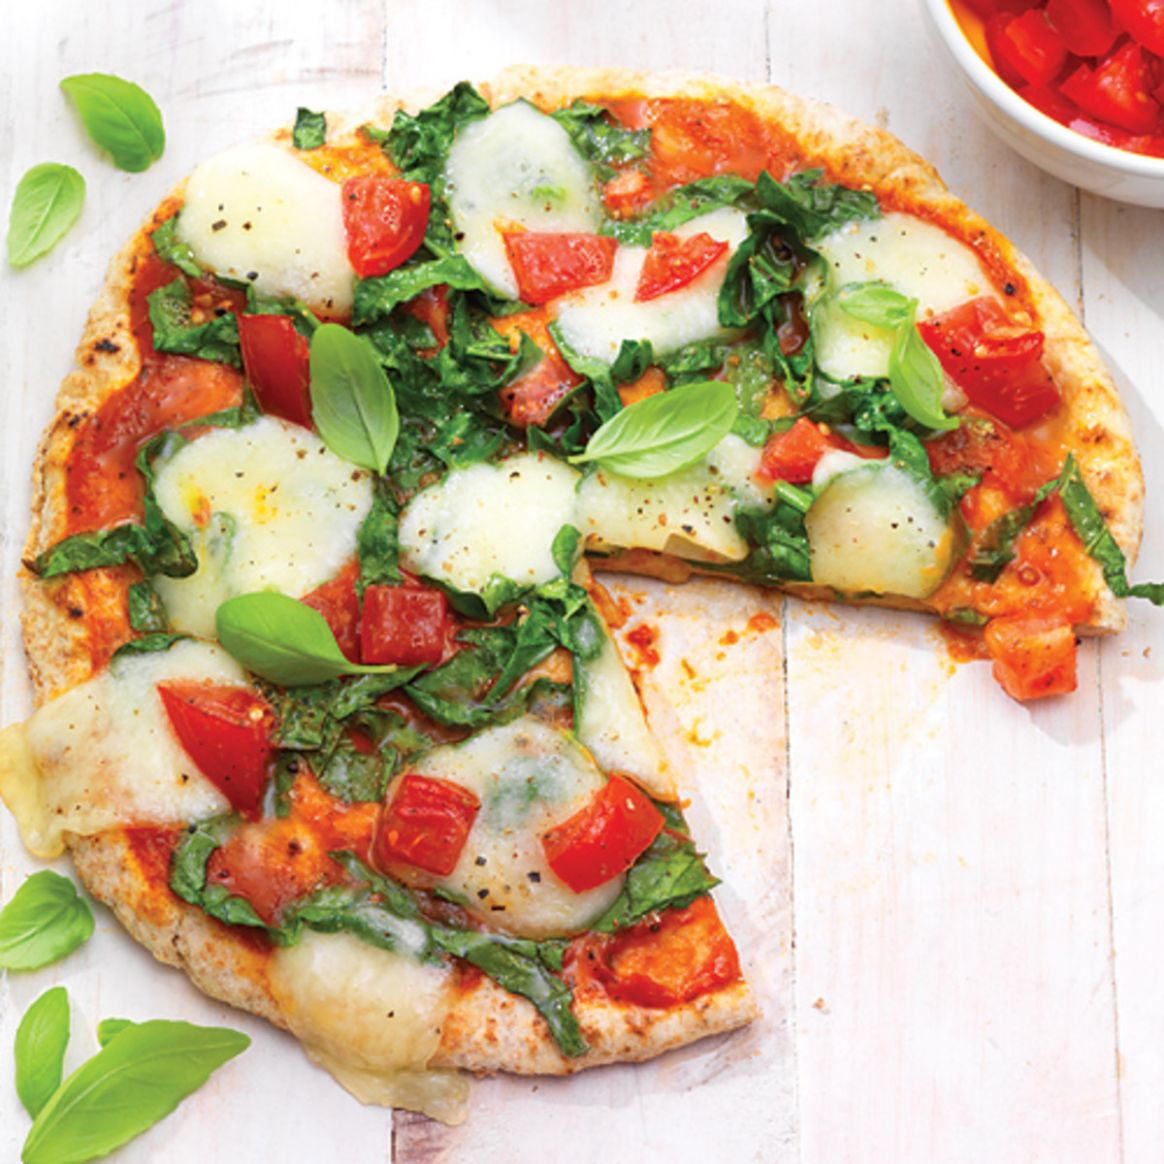 Healthy Personal Pizza Recipe - Clean Eating Magazine - Pizza Recipes Low Calorie